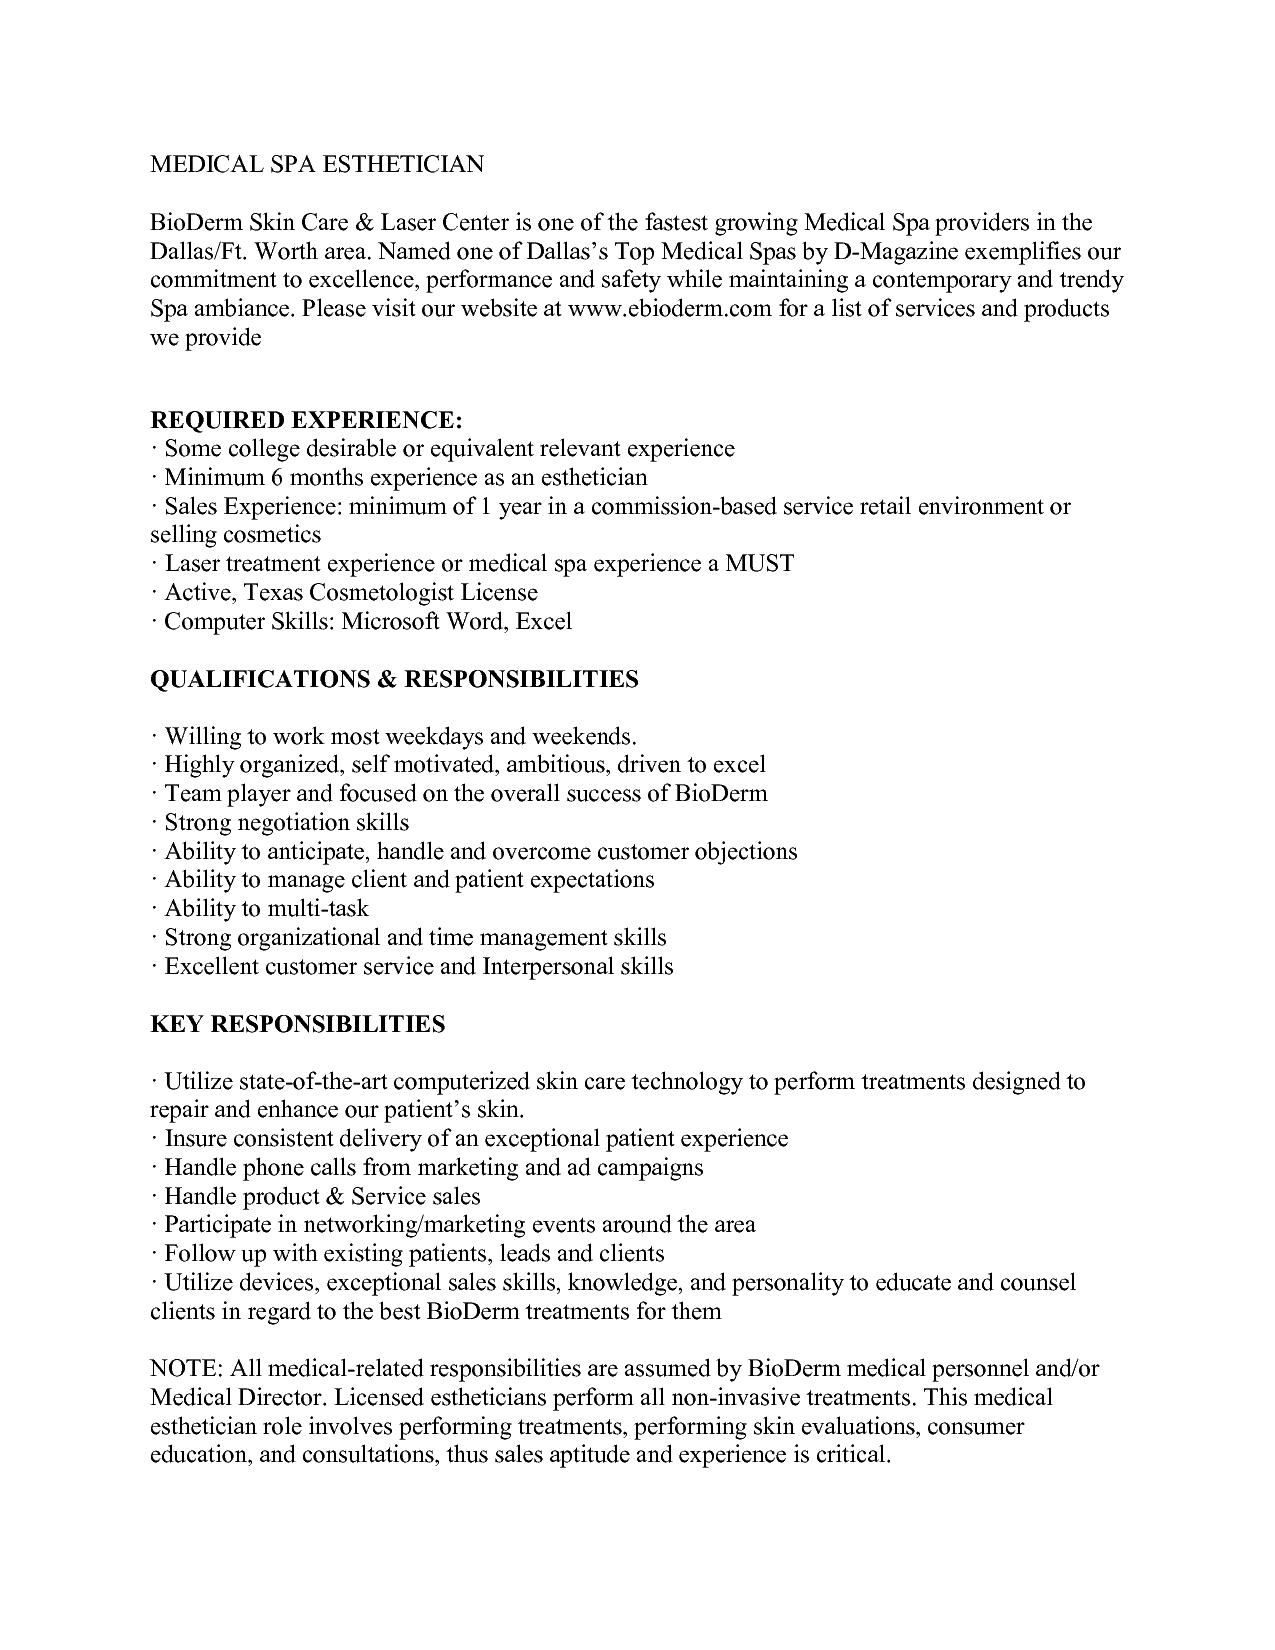 Medical Esthetician Resume Sample   Http://www.jobresume.website/medical  Sample Esthetician Resume